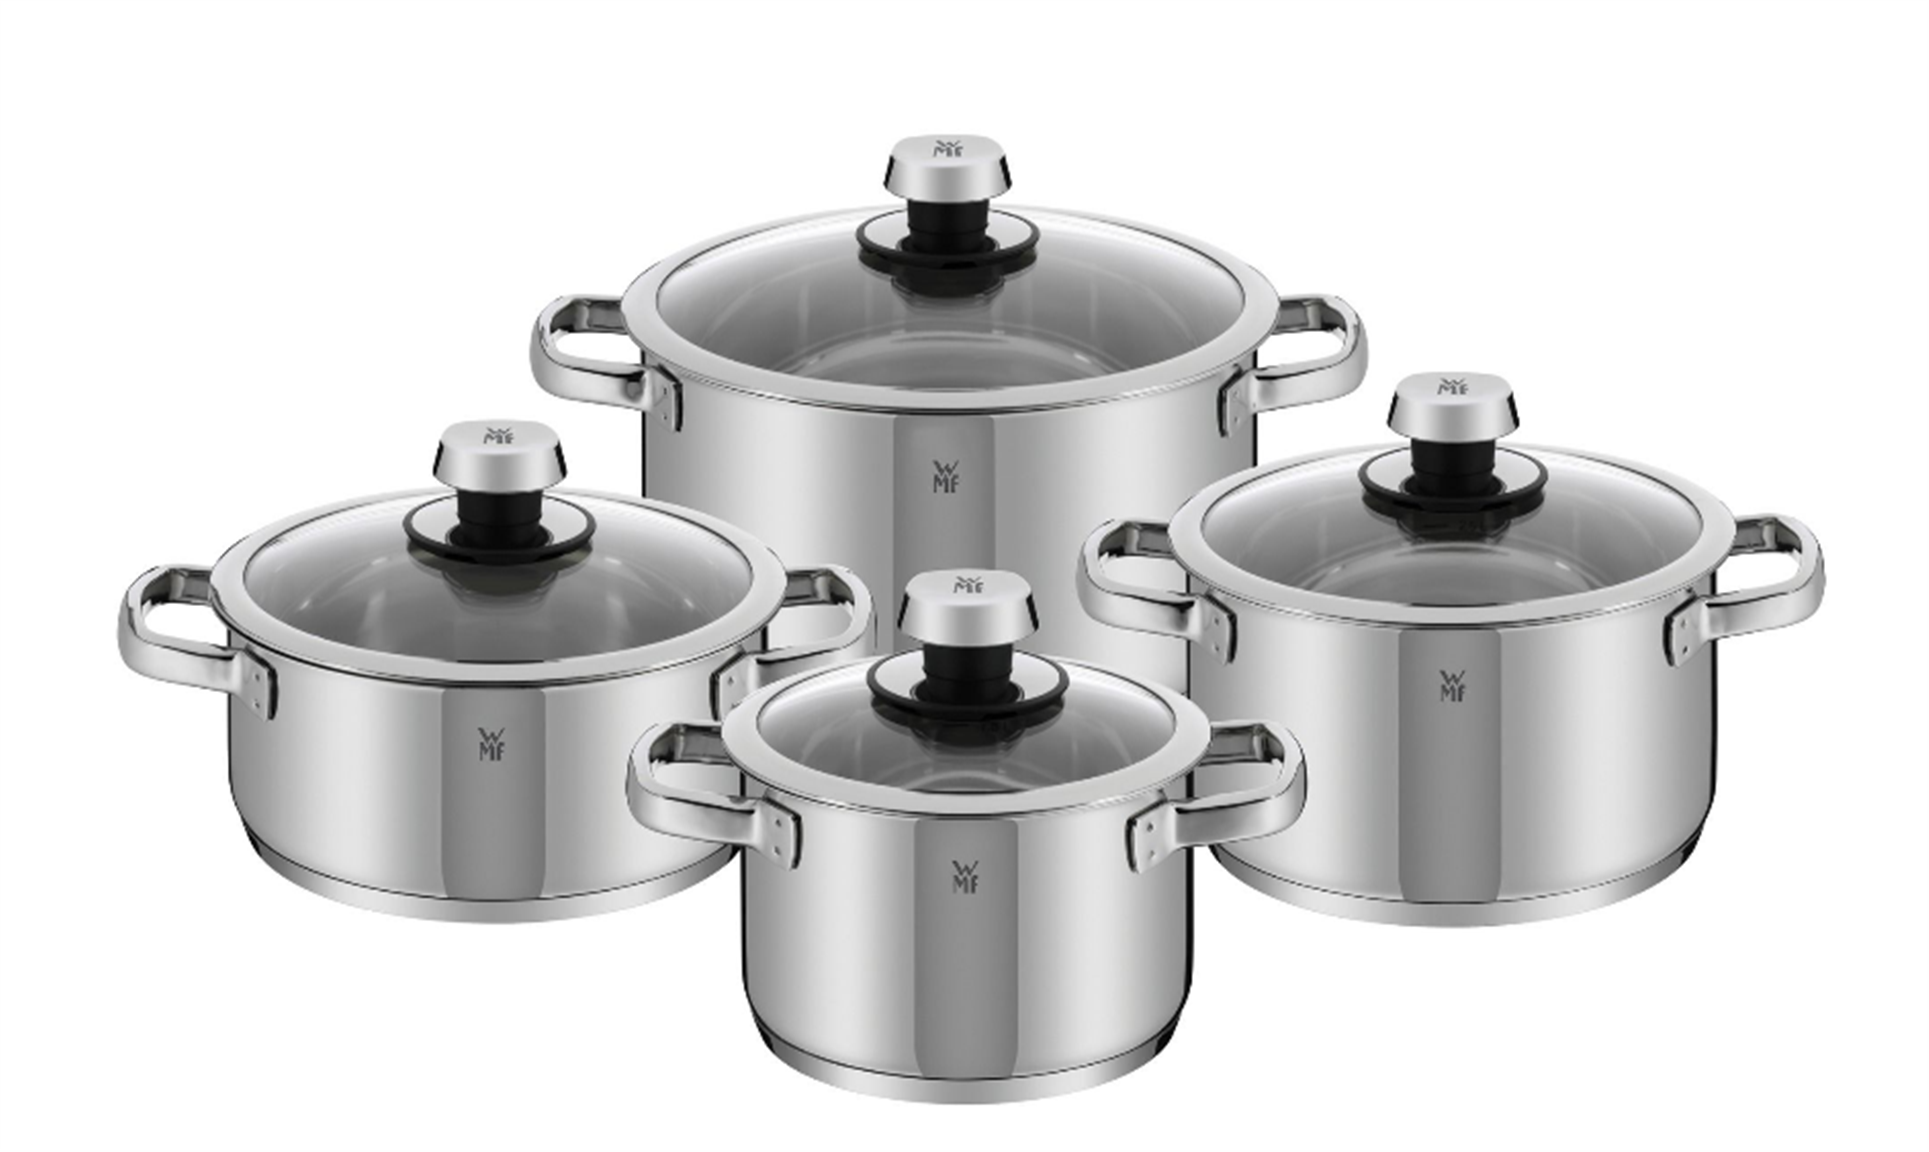 All-Clad Factory Seconds Sale! Up To 85% Off – Get The Livo 8-pc Cookware Set Only $69.95, Reg $400!